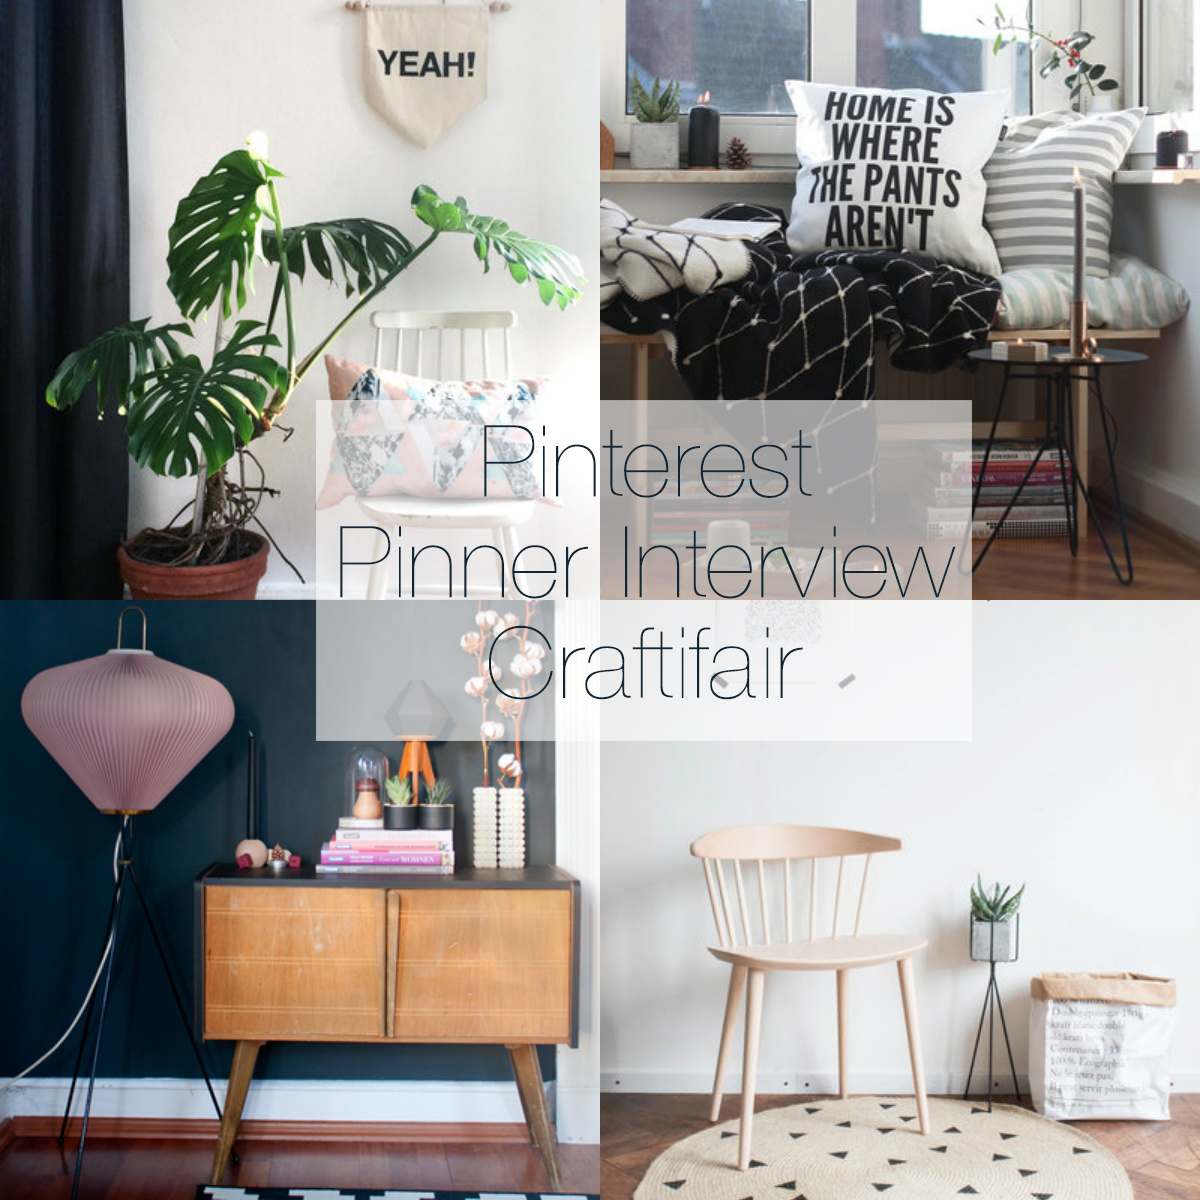 Pinterest Pinner Interview Craftifair